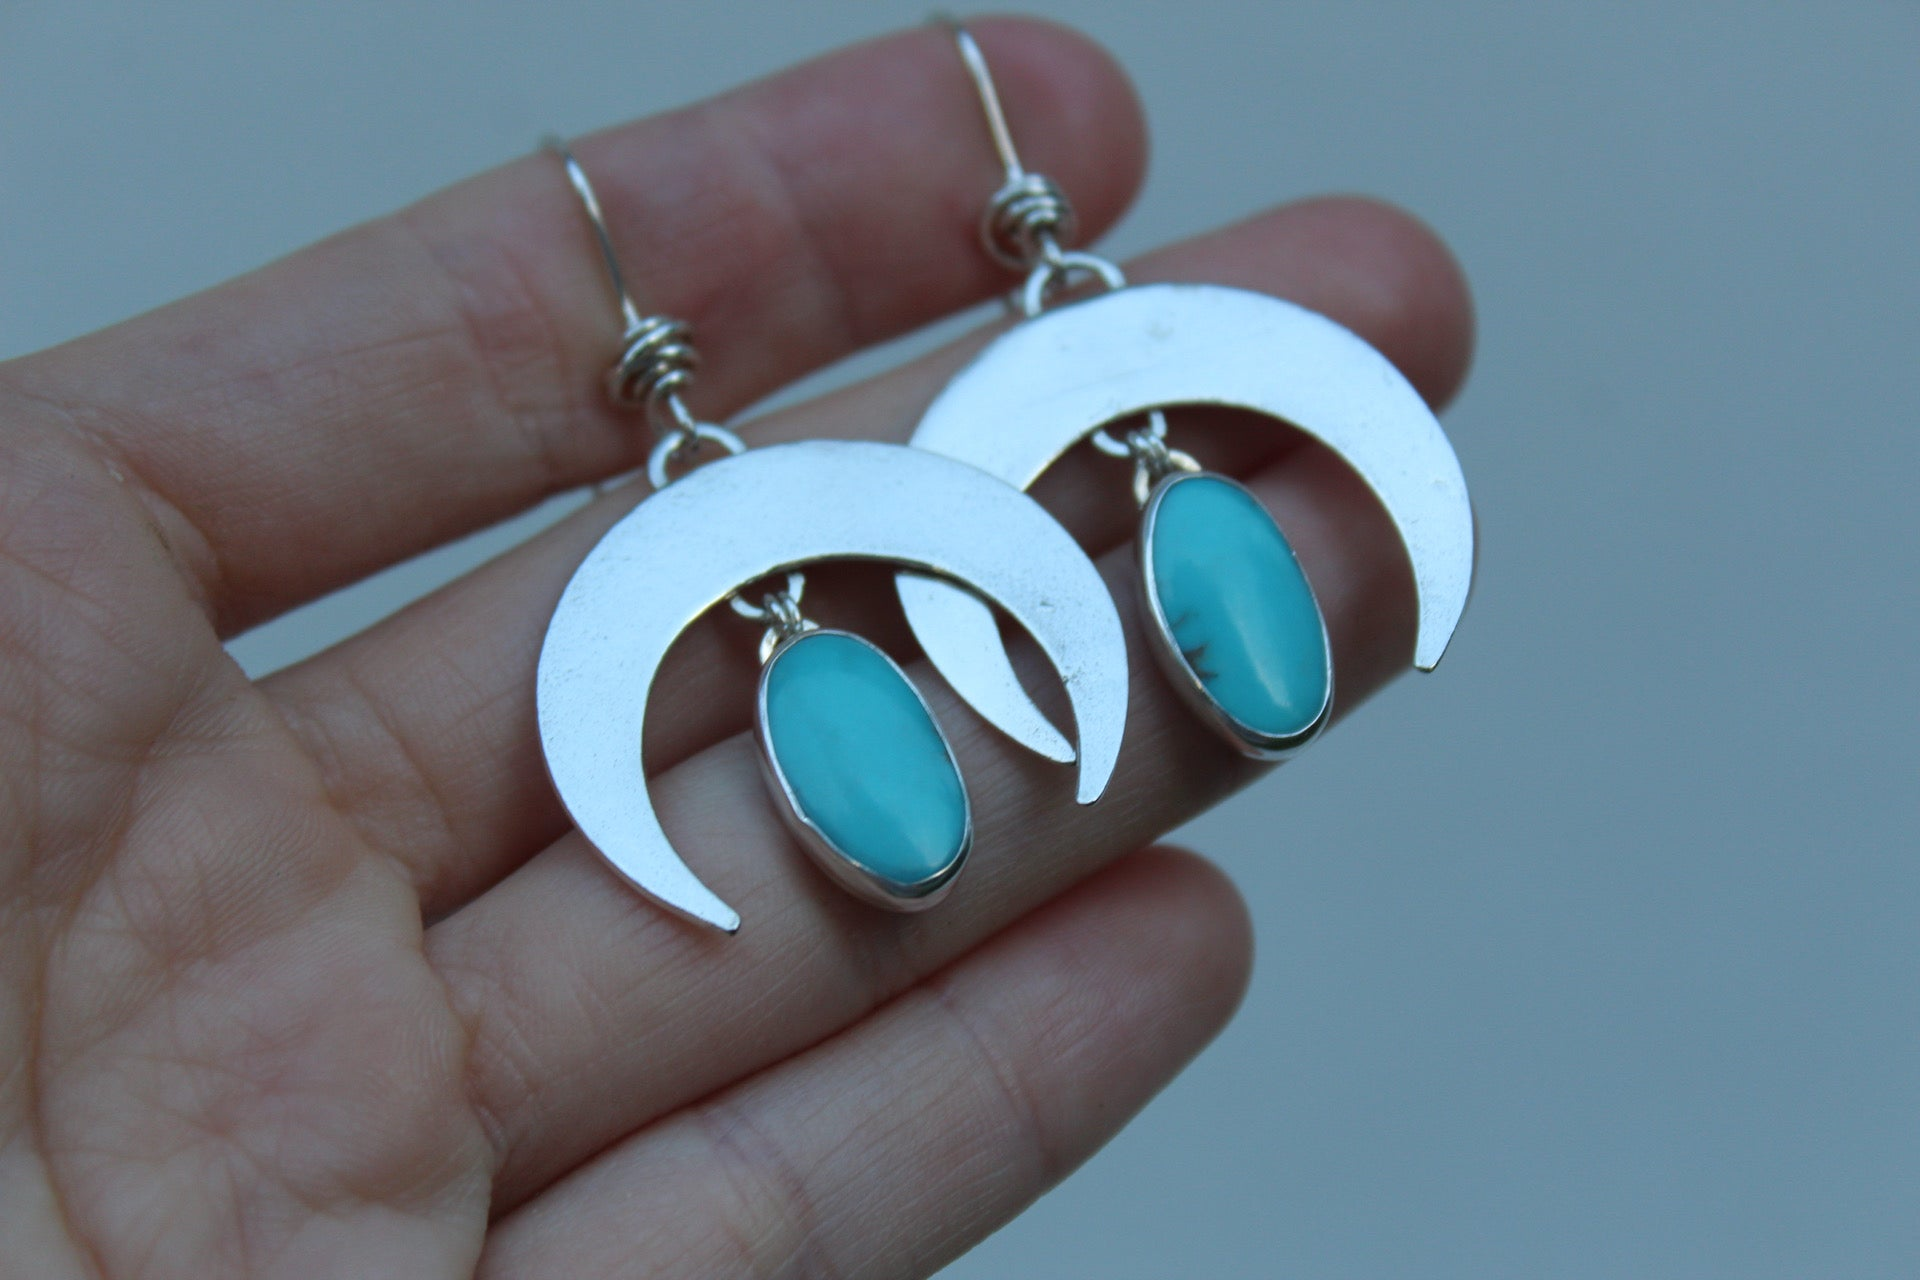 Small Crescent Moon Earring #16